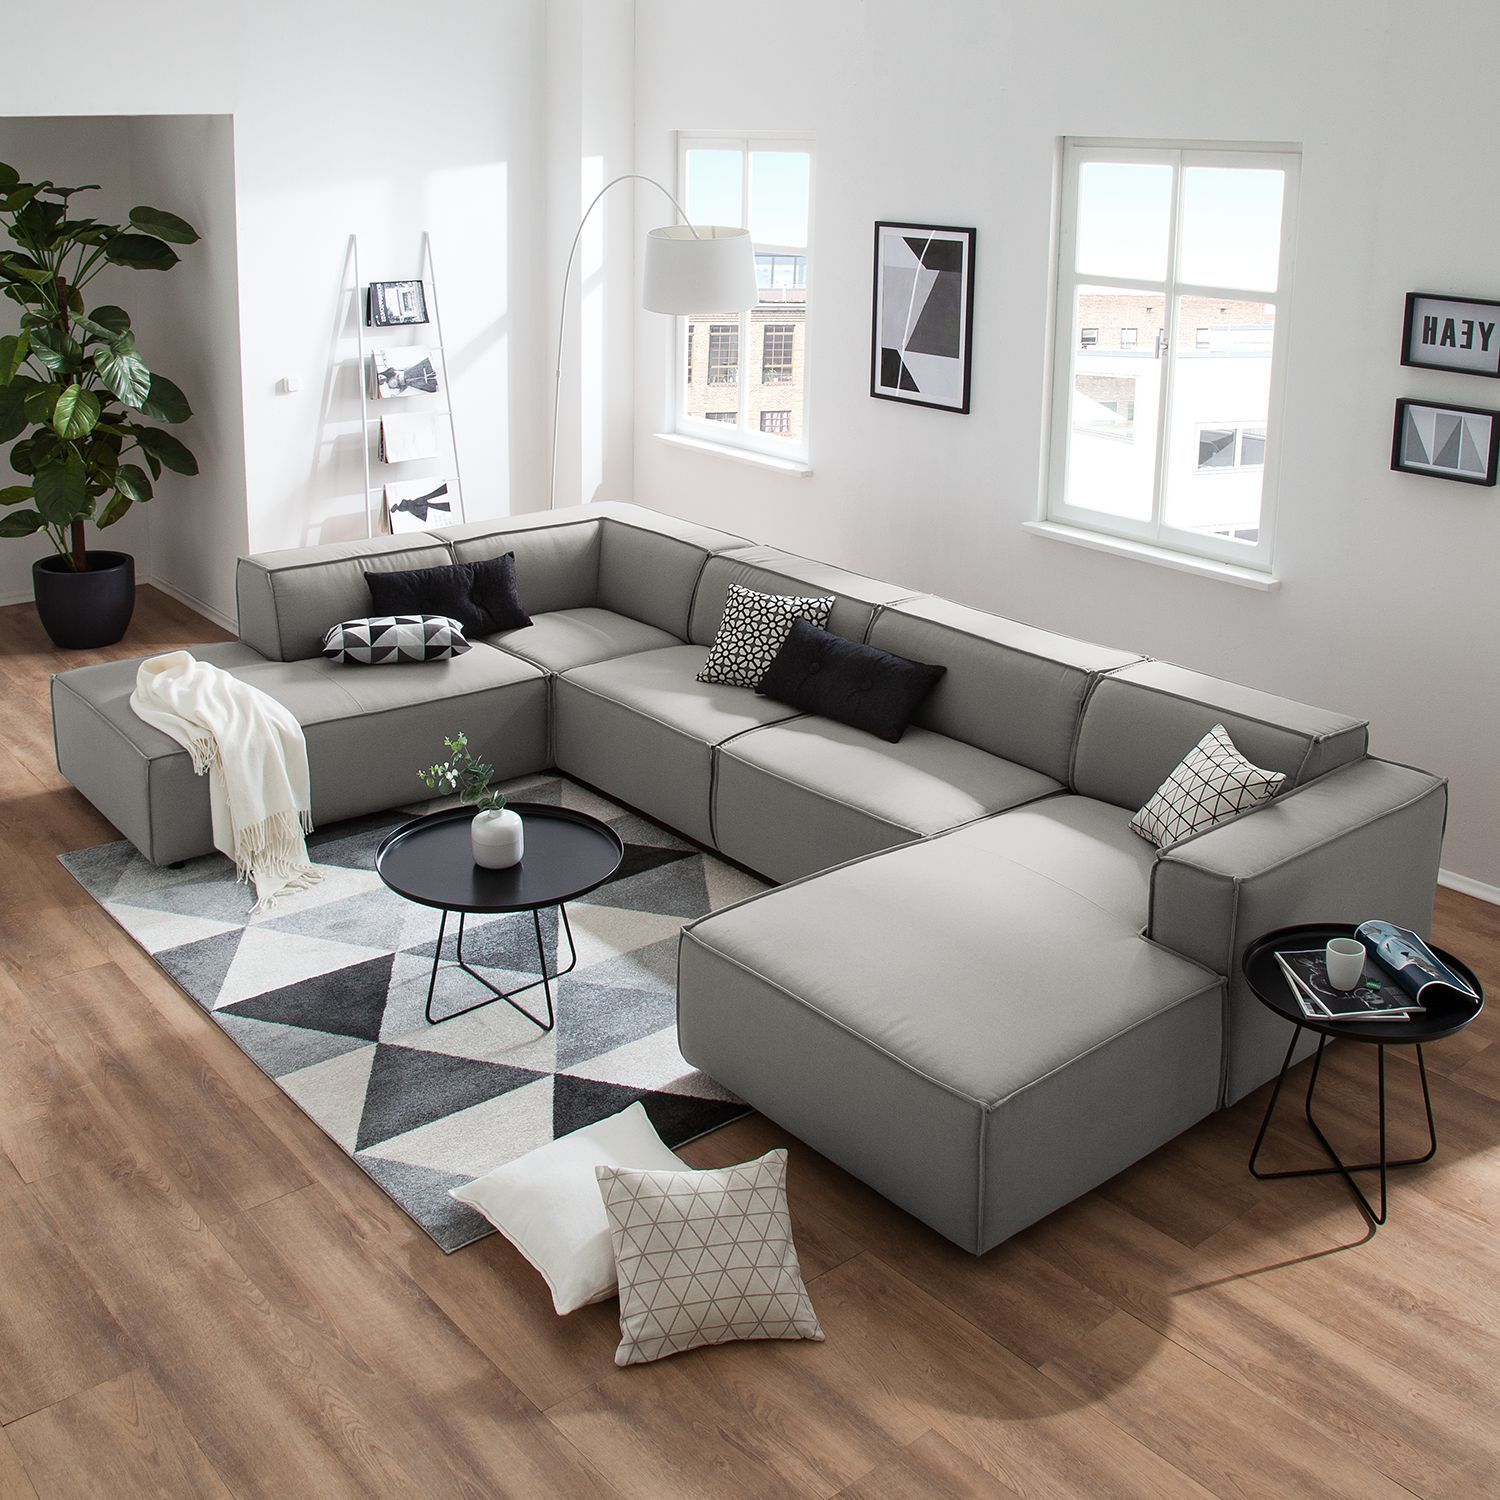 8 Modern Living Rooms Ideas and Decoration Pictures [New